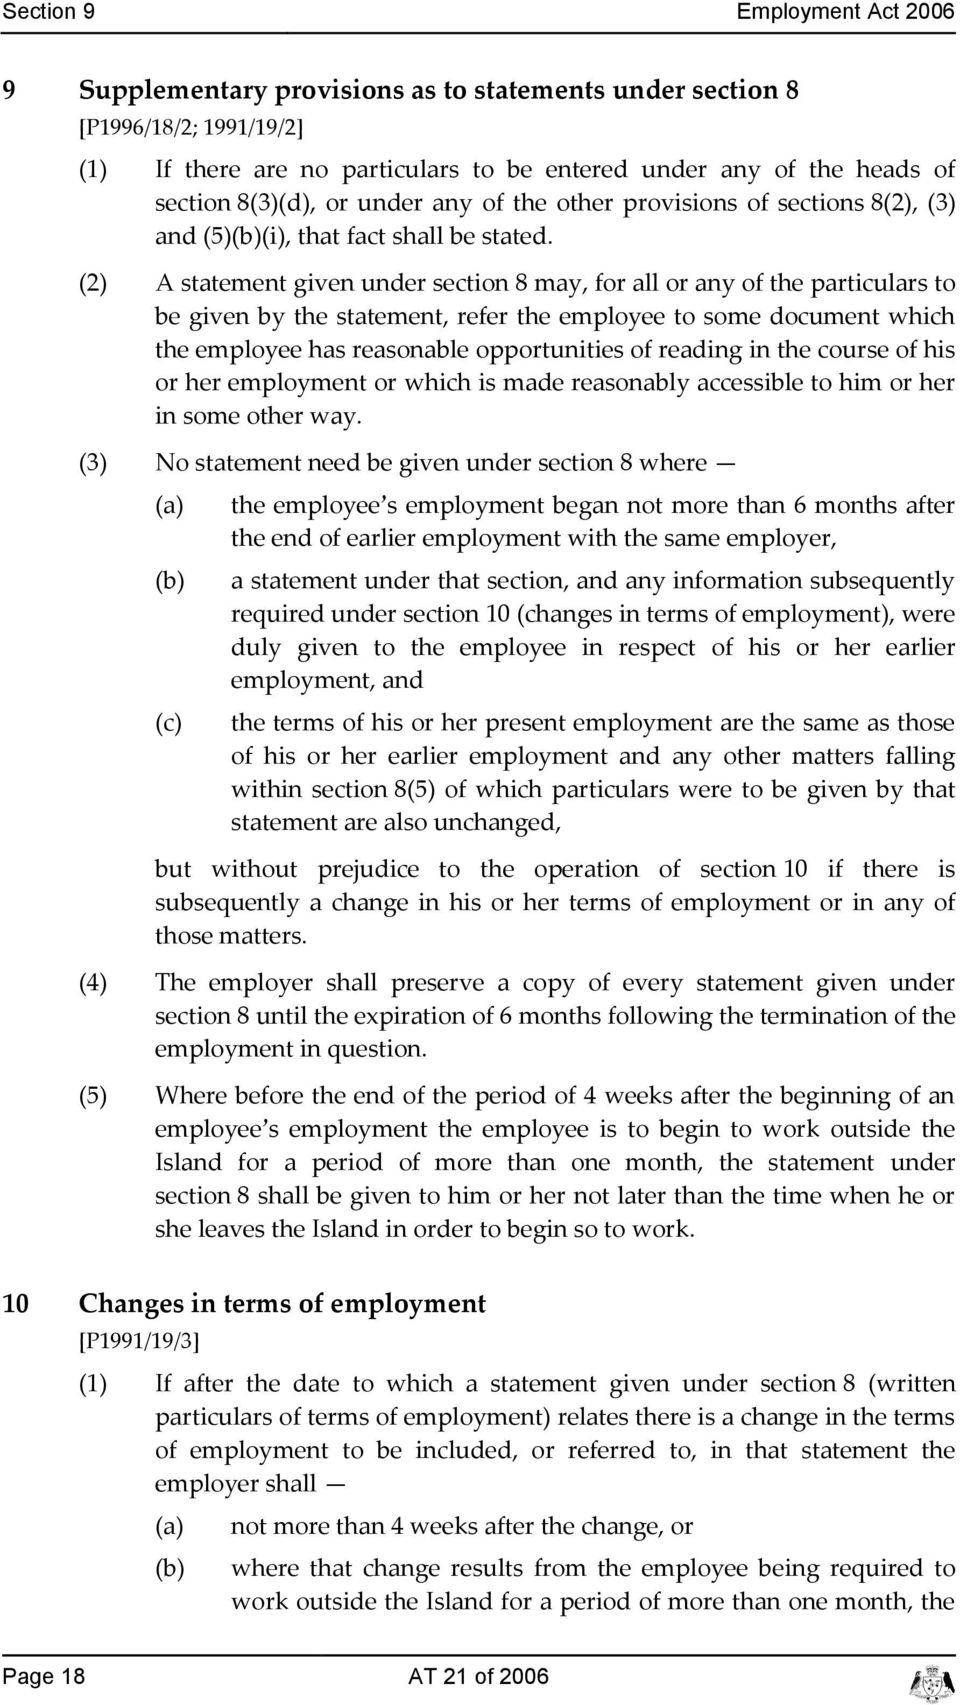 (2) A statement given under setion 8 may, for all or any of the partiulars to be given by the statement, refer the employee to some doument whih the employee has reasonable opportunities of reading